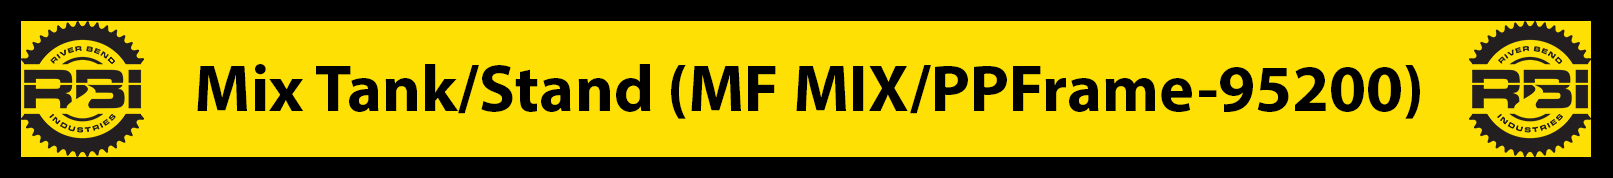 mix-tank-icon.png